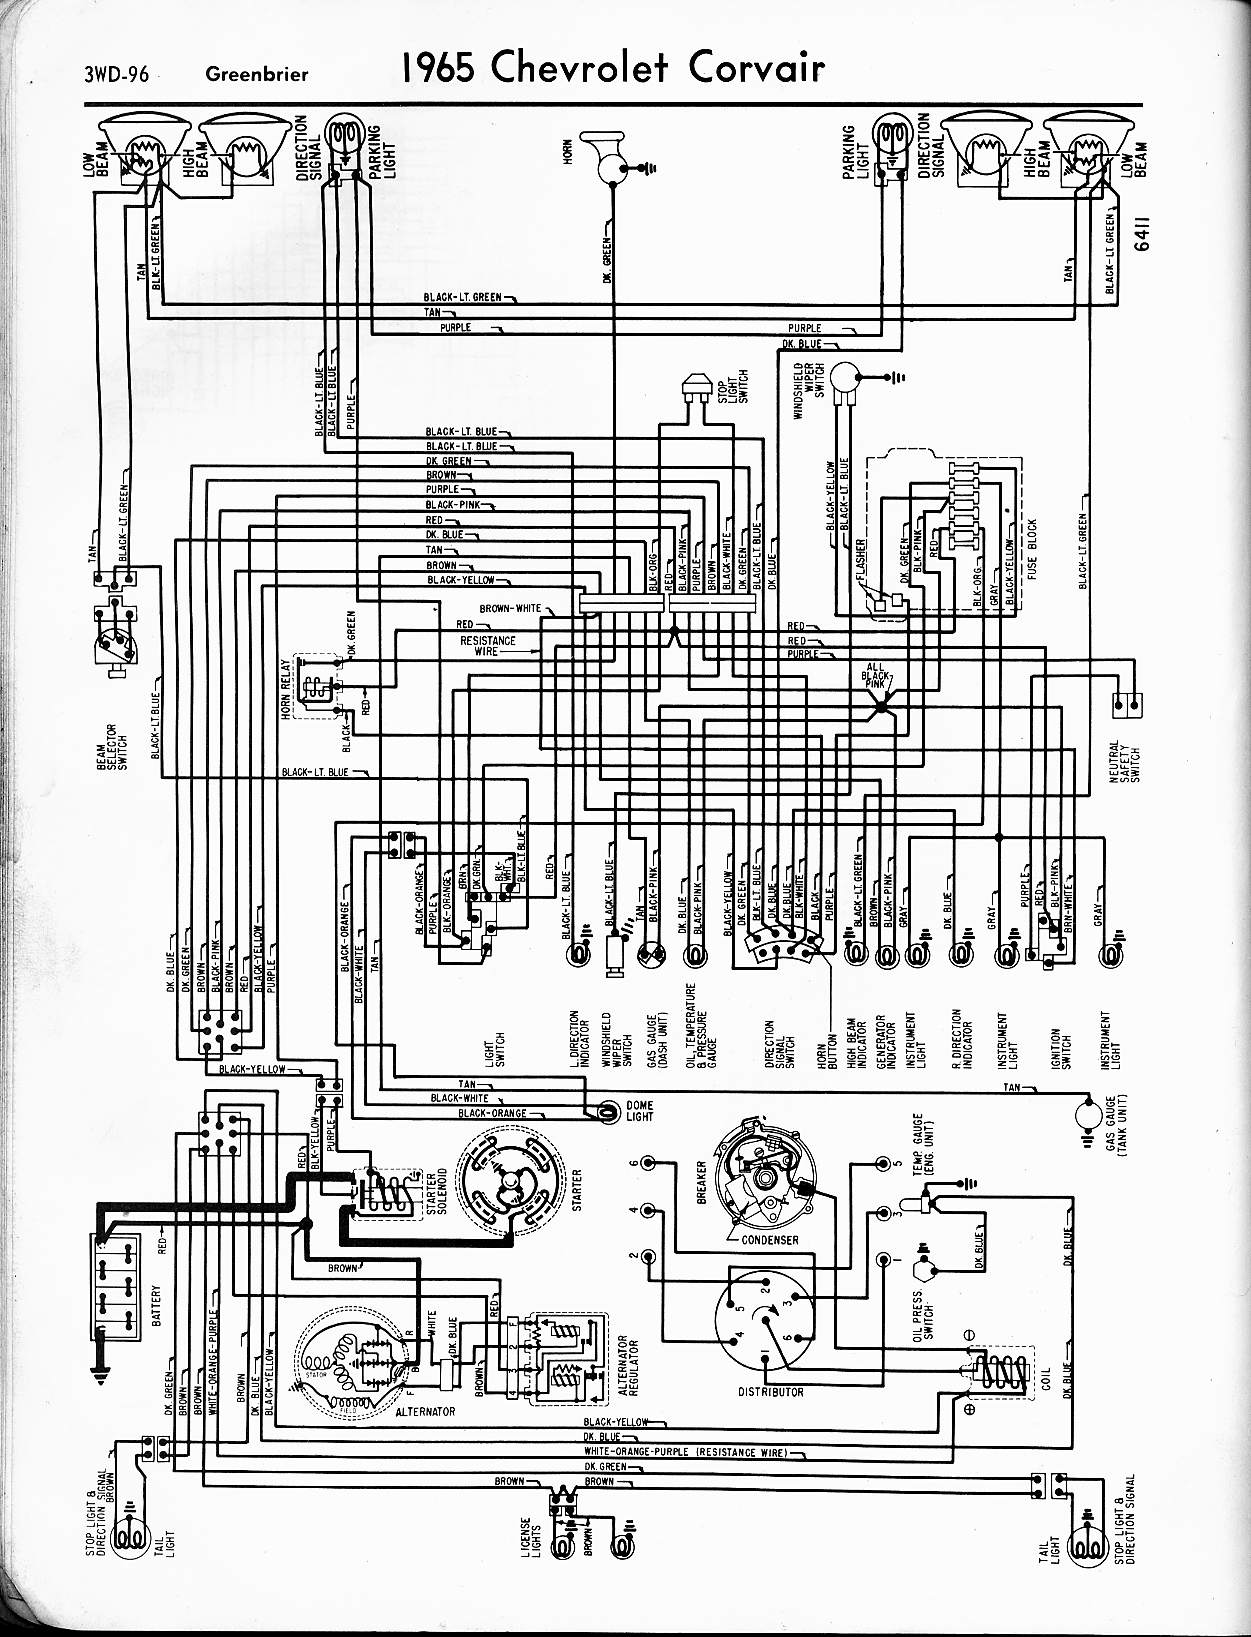 wiring diagram for 1960 chevrolet corvair all models